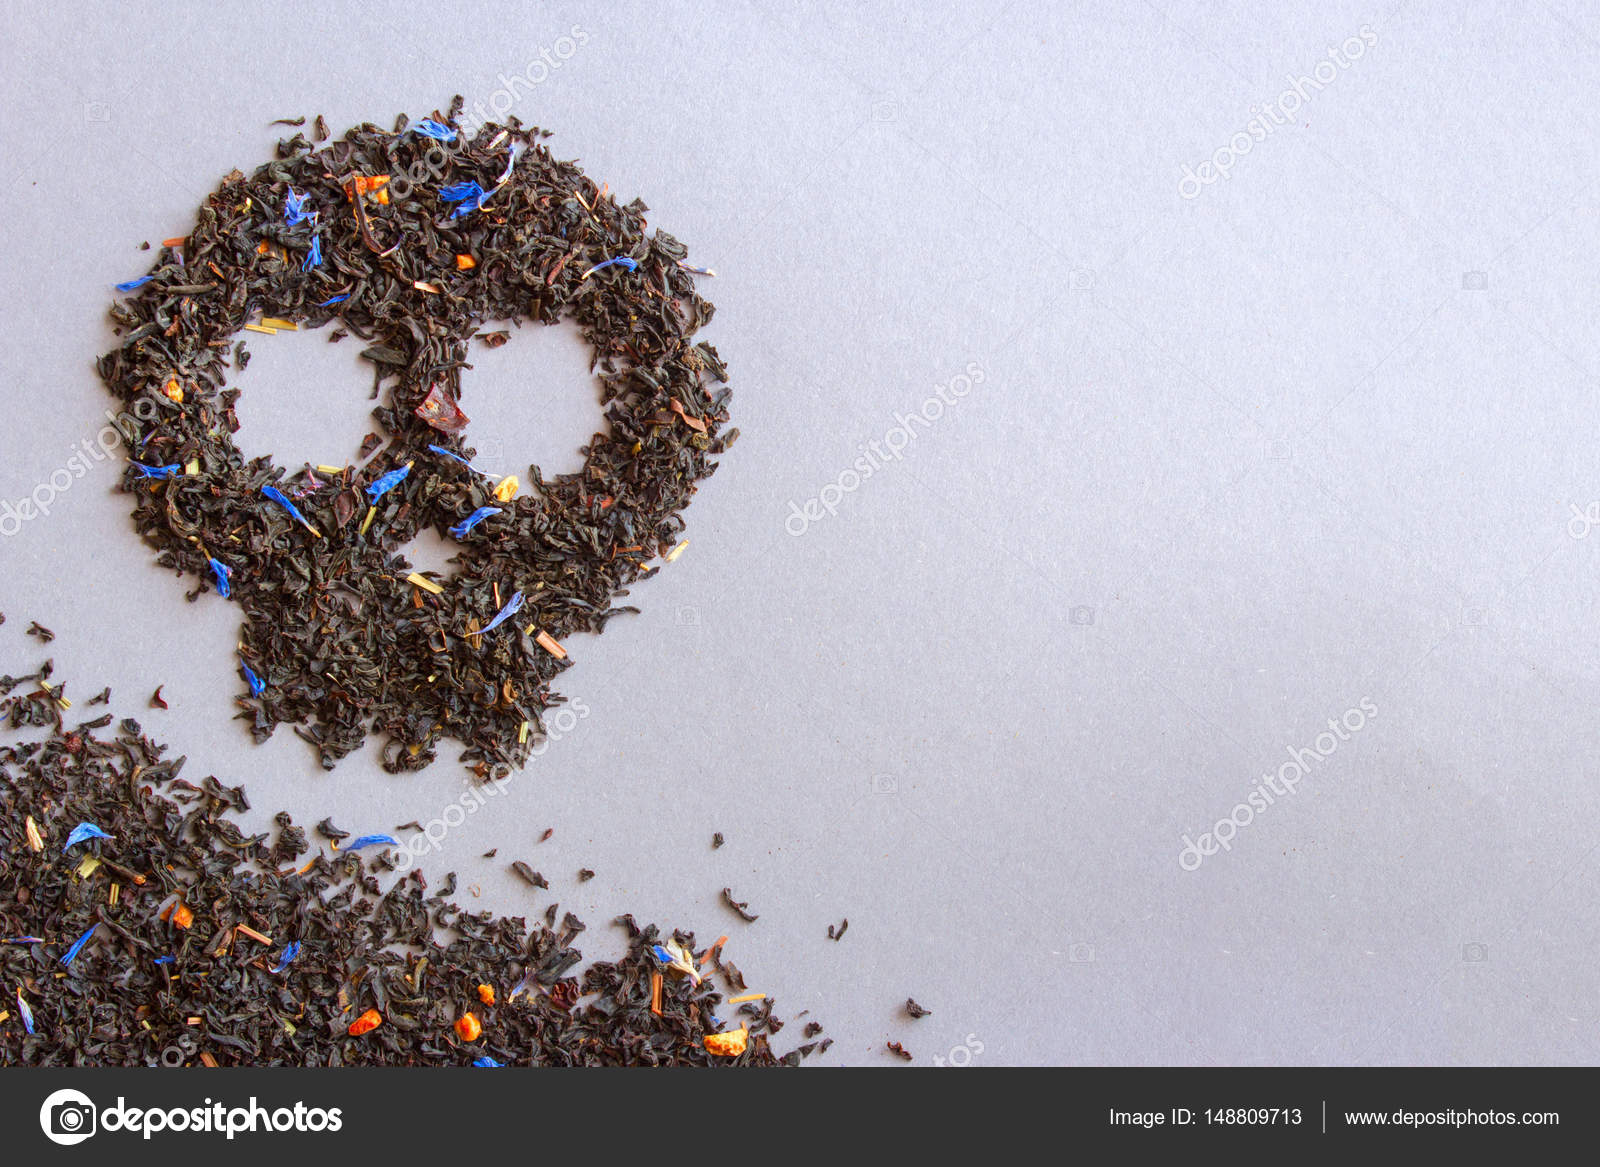 Skull symbol of tea poor tea kills stock photo adragan 148809713 skull symbol of tea poor tea kills empty space for text photo by adragan buycottarizona Images